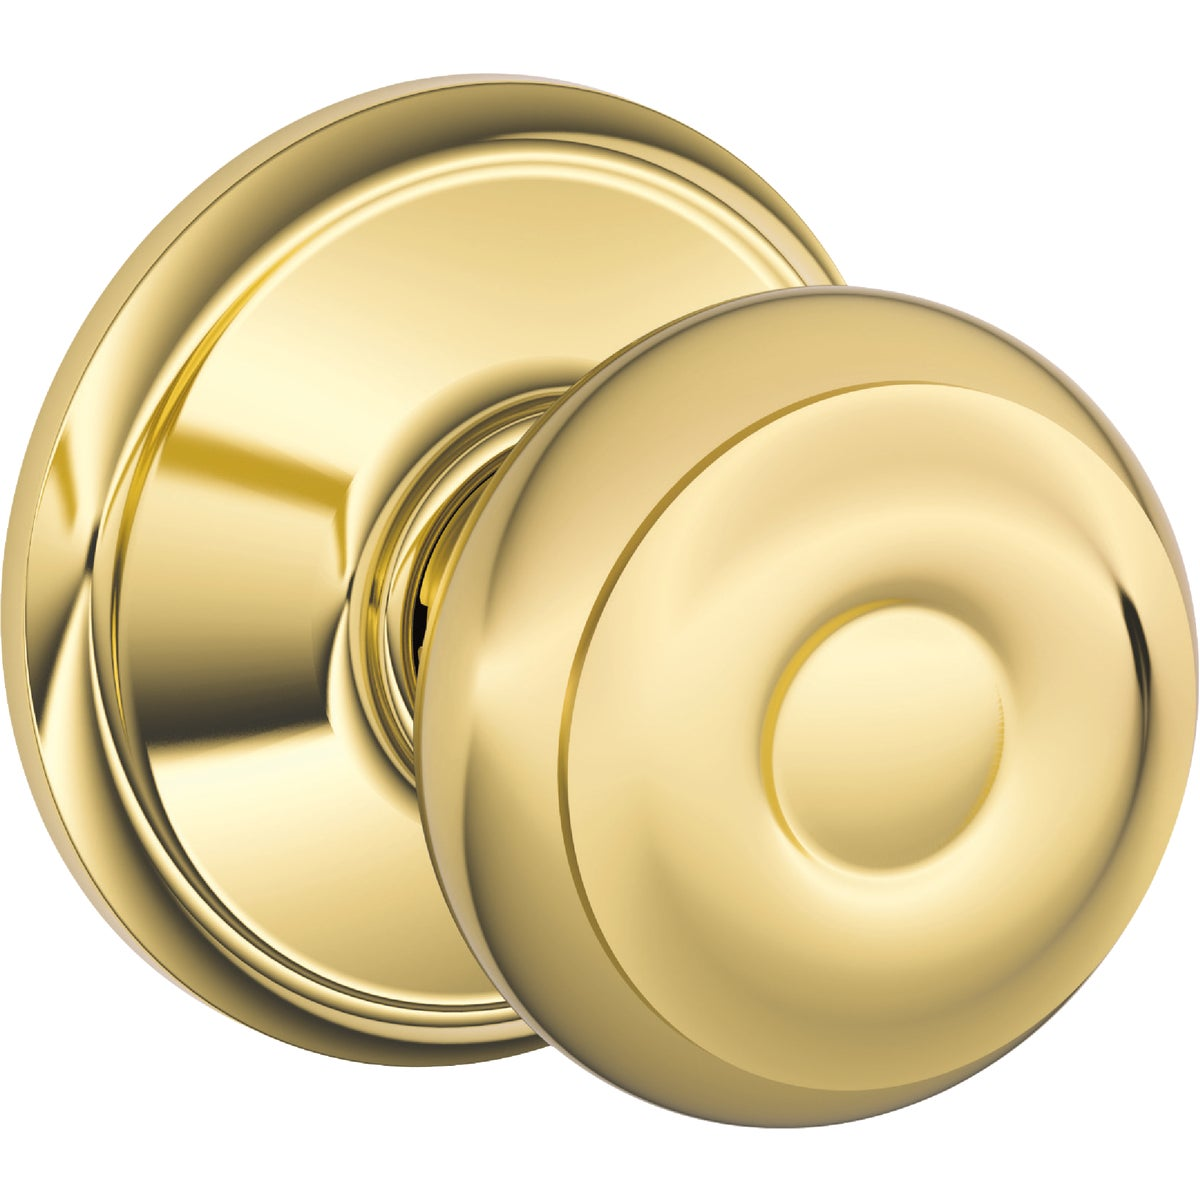 PB GEORGIAN PASSAGE KNOB - F10VGEO605 by Schlage Lock Co